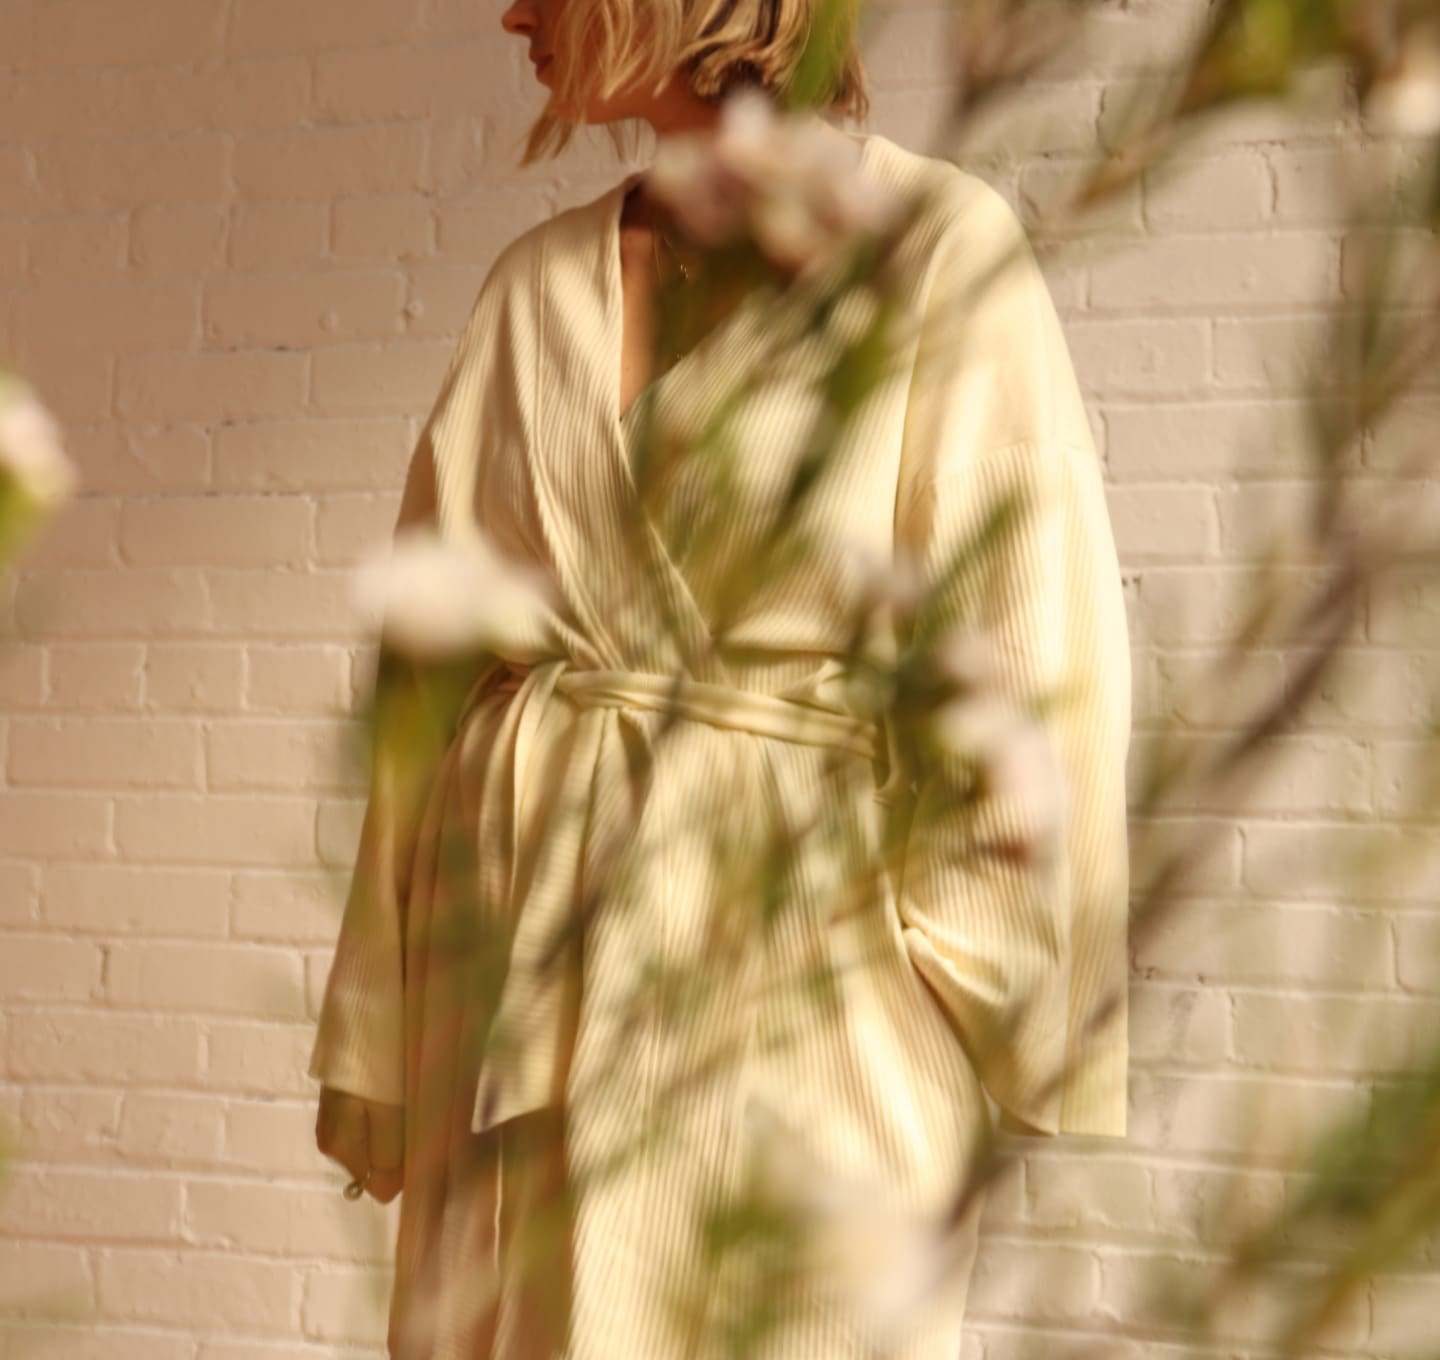 A photo of our co-founder, Mackenzie Yeates, in the Kotn Ribbed Robe.